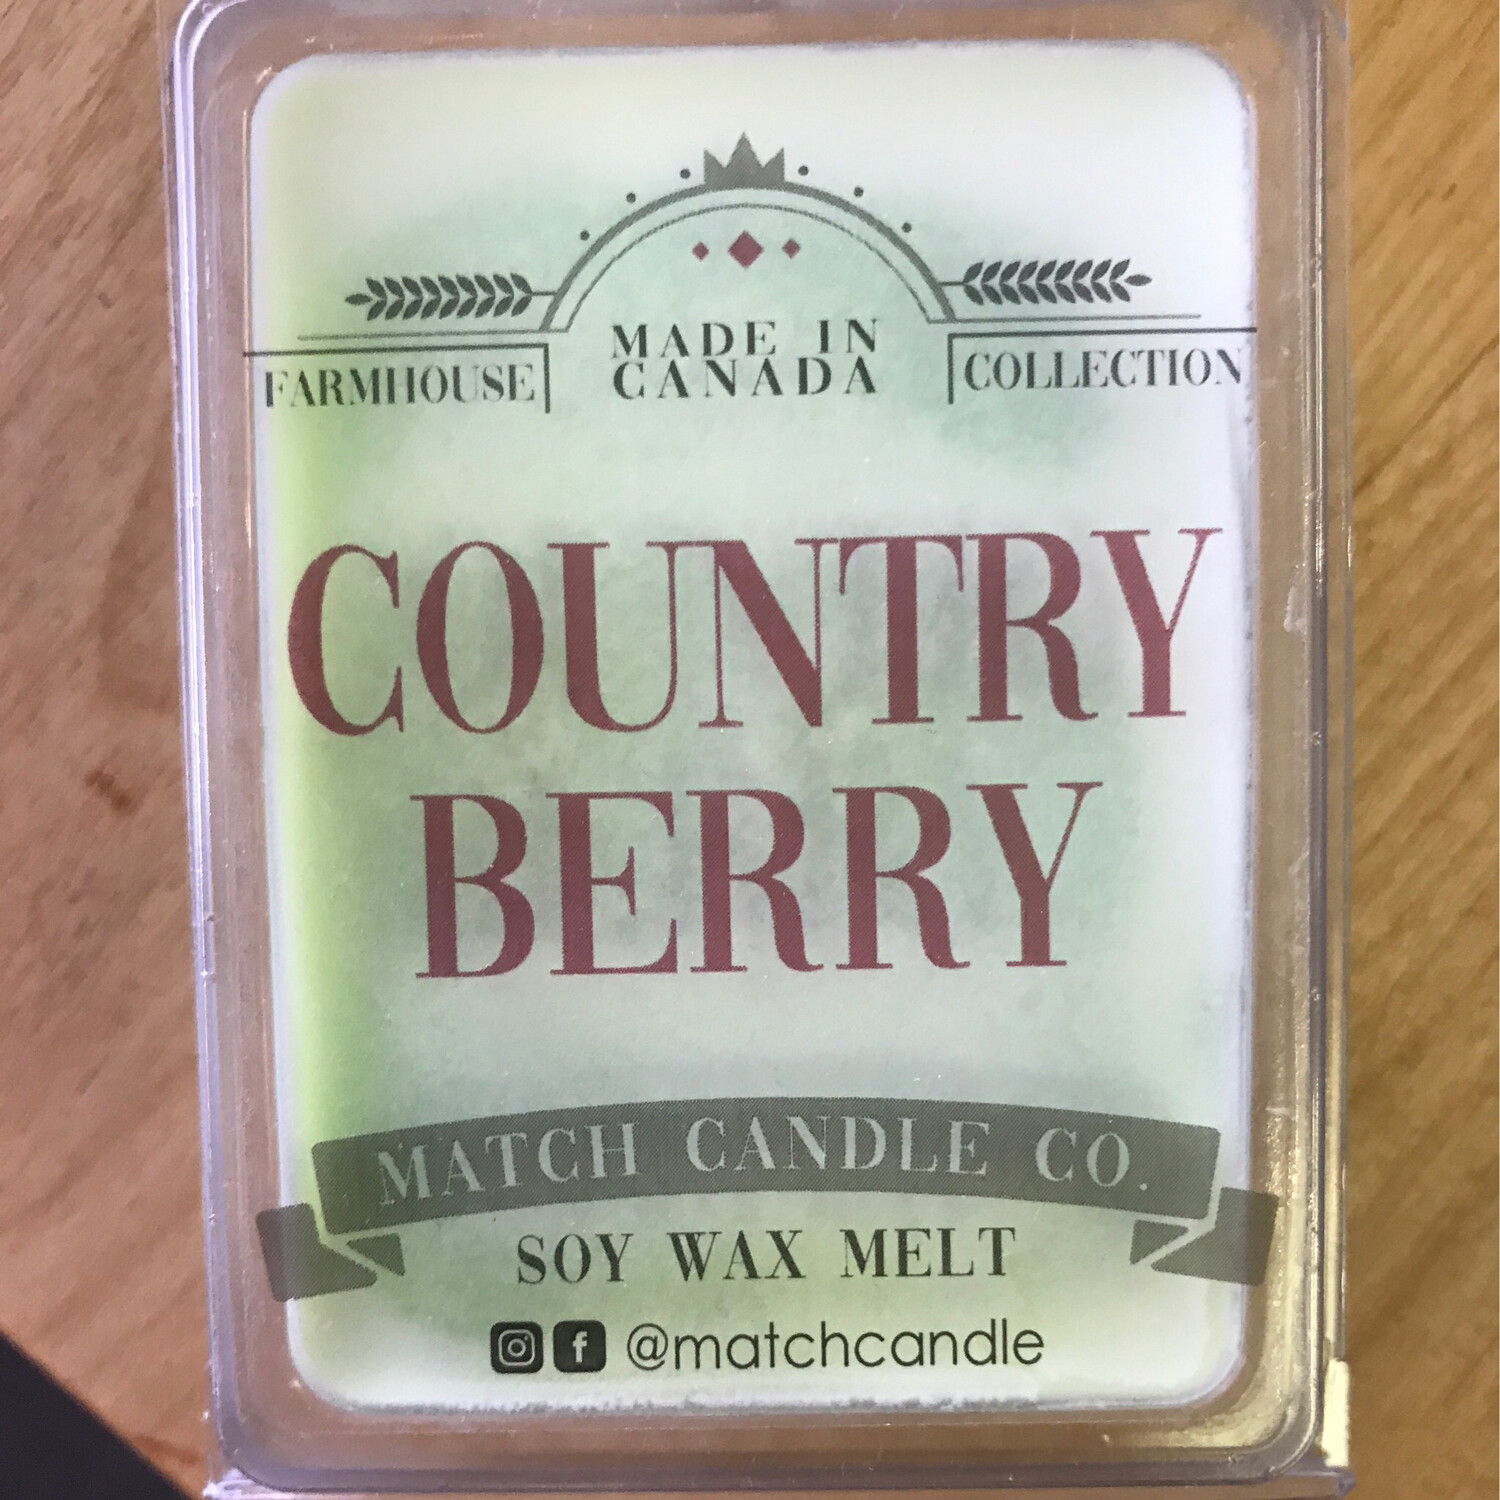 Country Berry Wax Melt